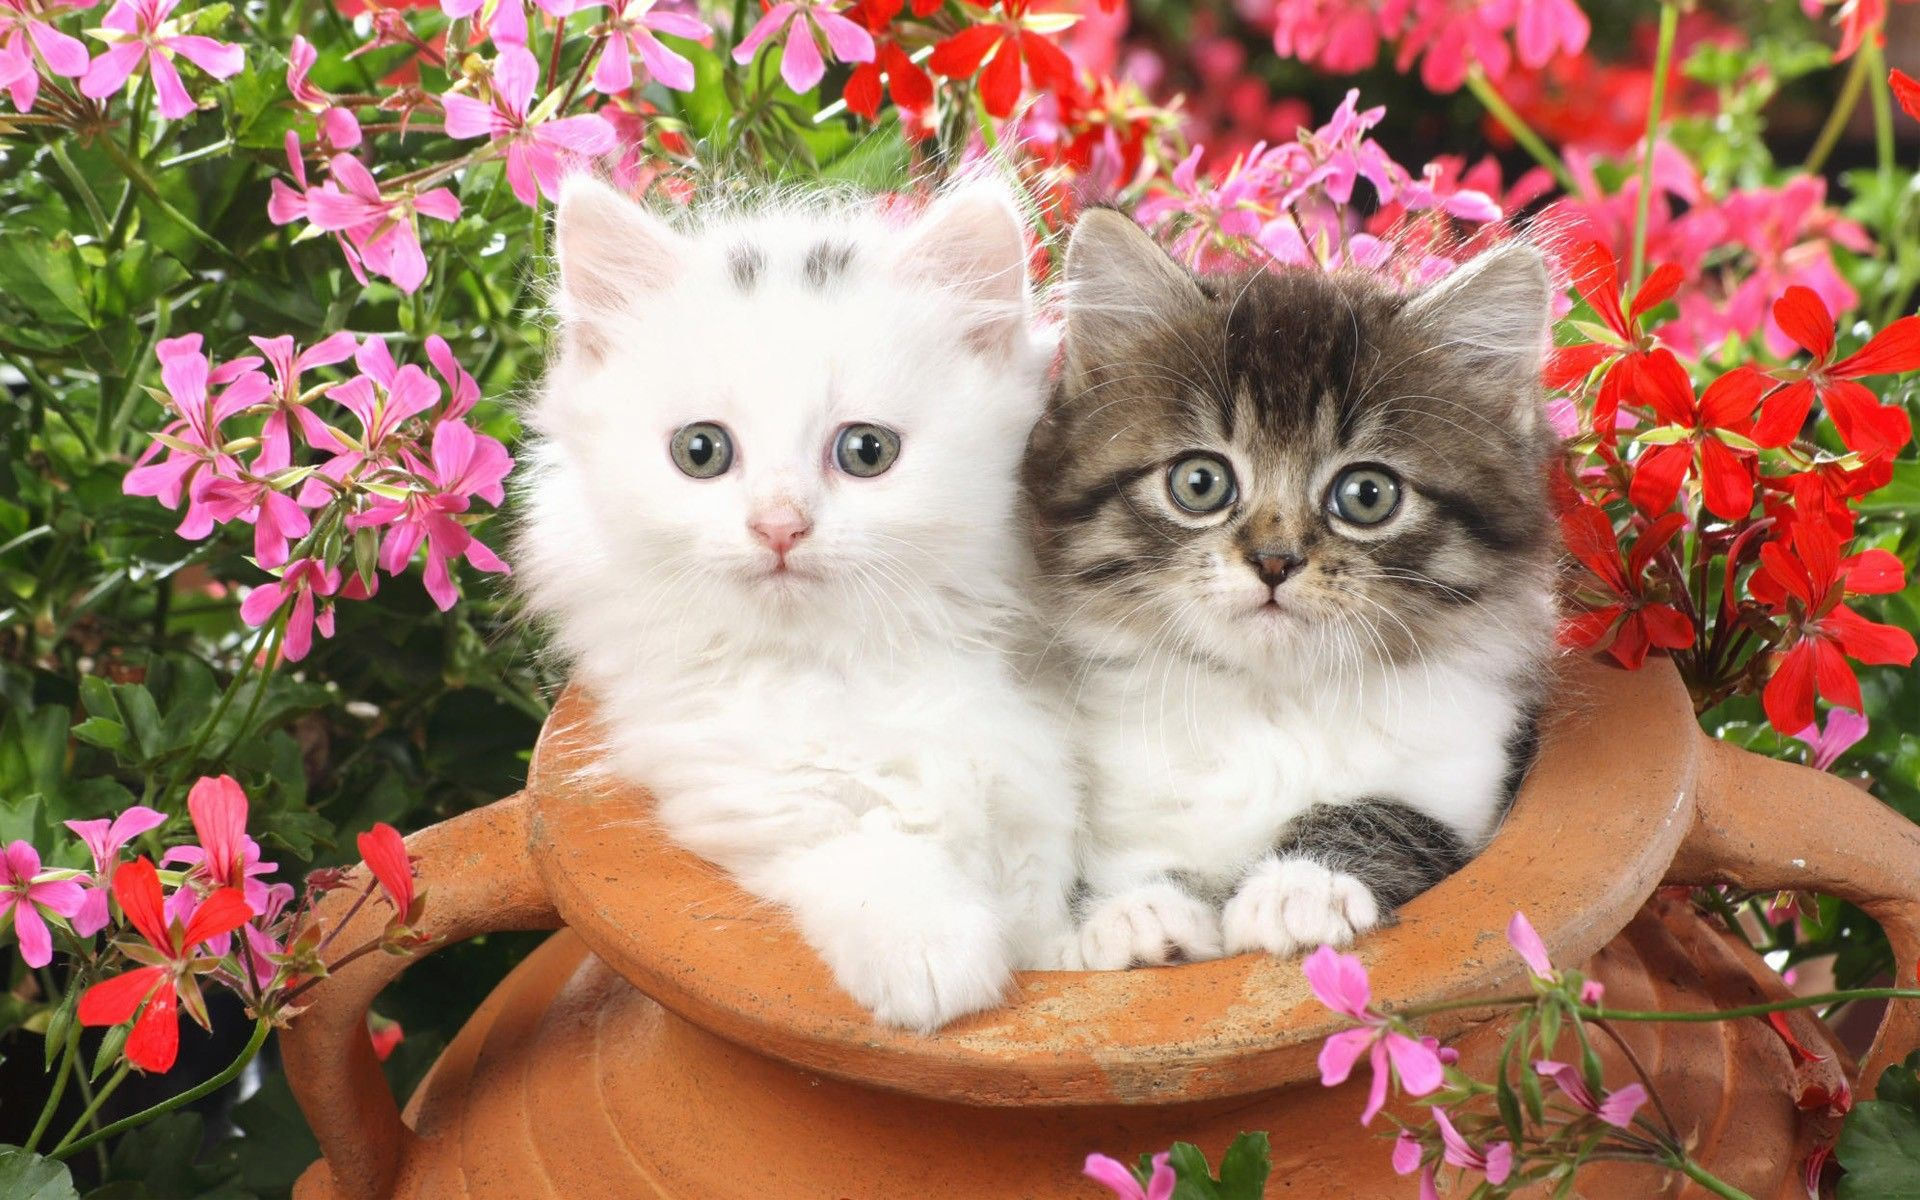 Cute Cat Wallpaper px 541 74 KB Animals Cute